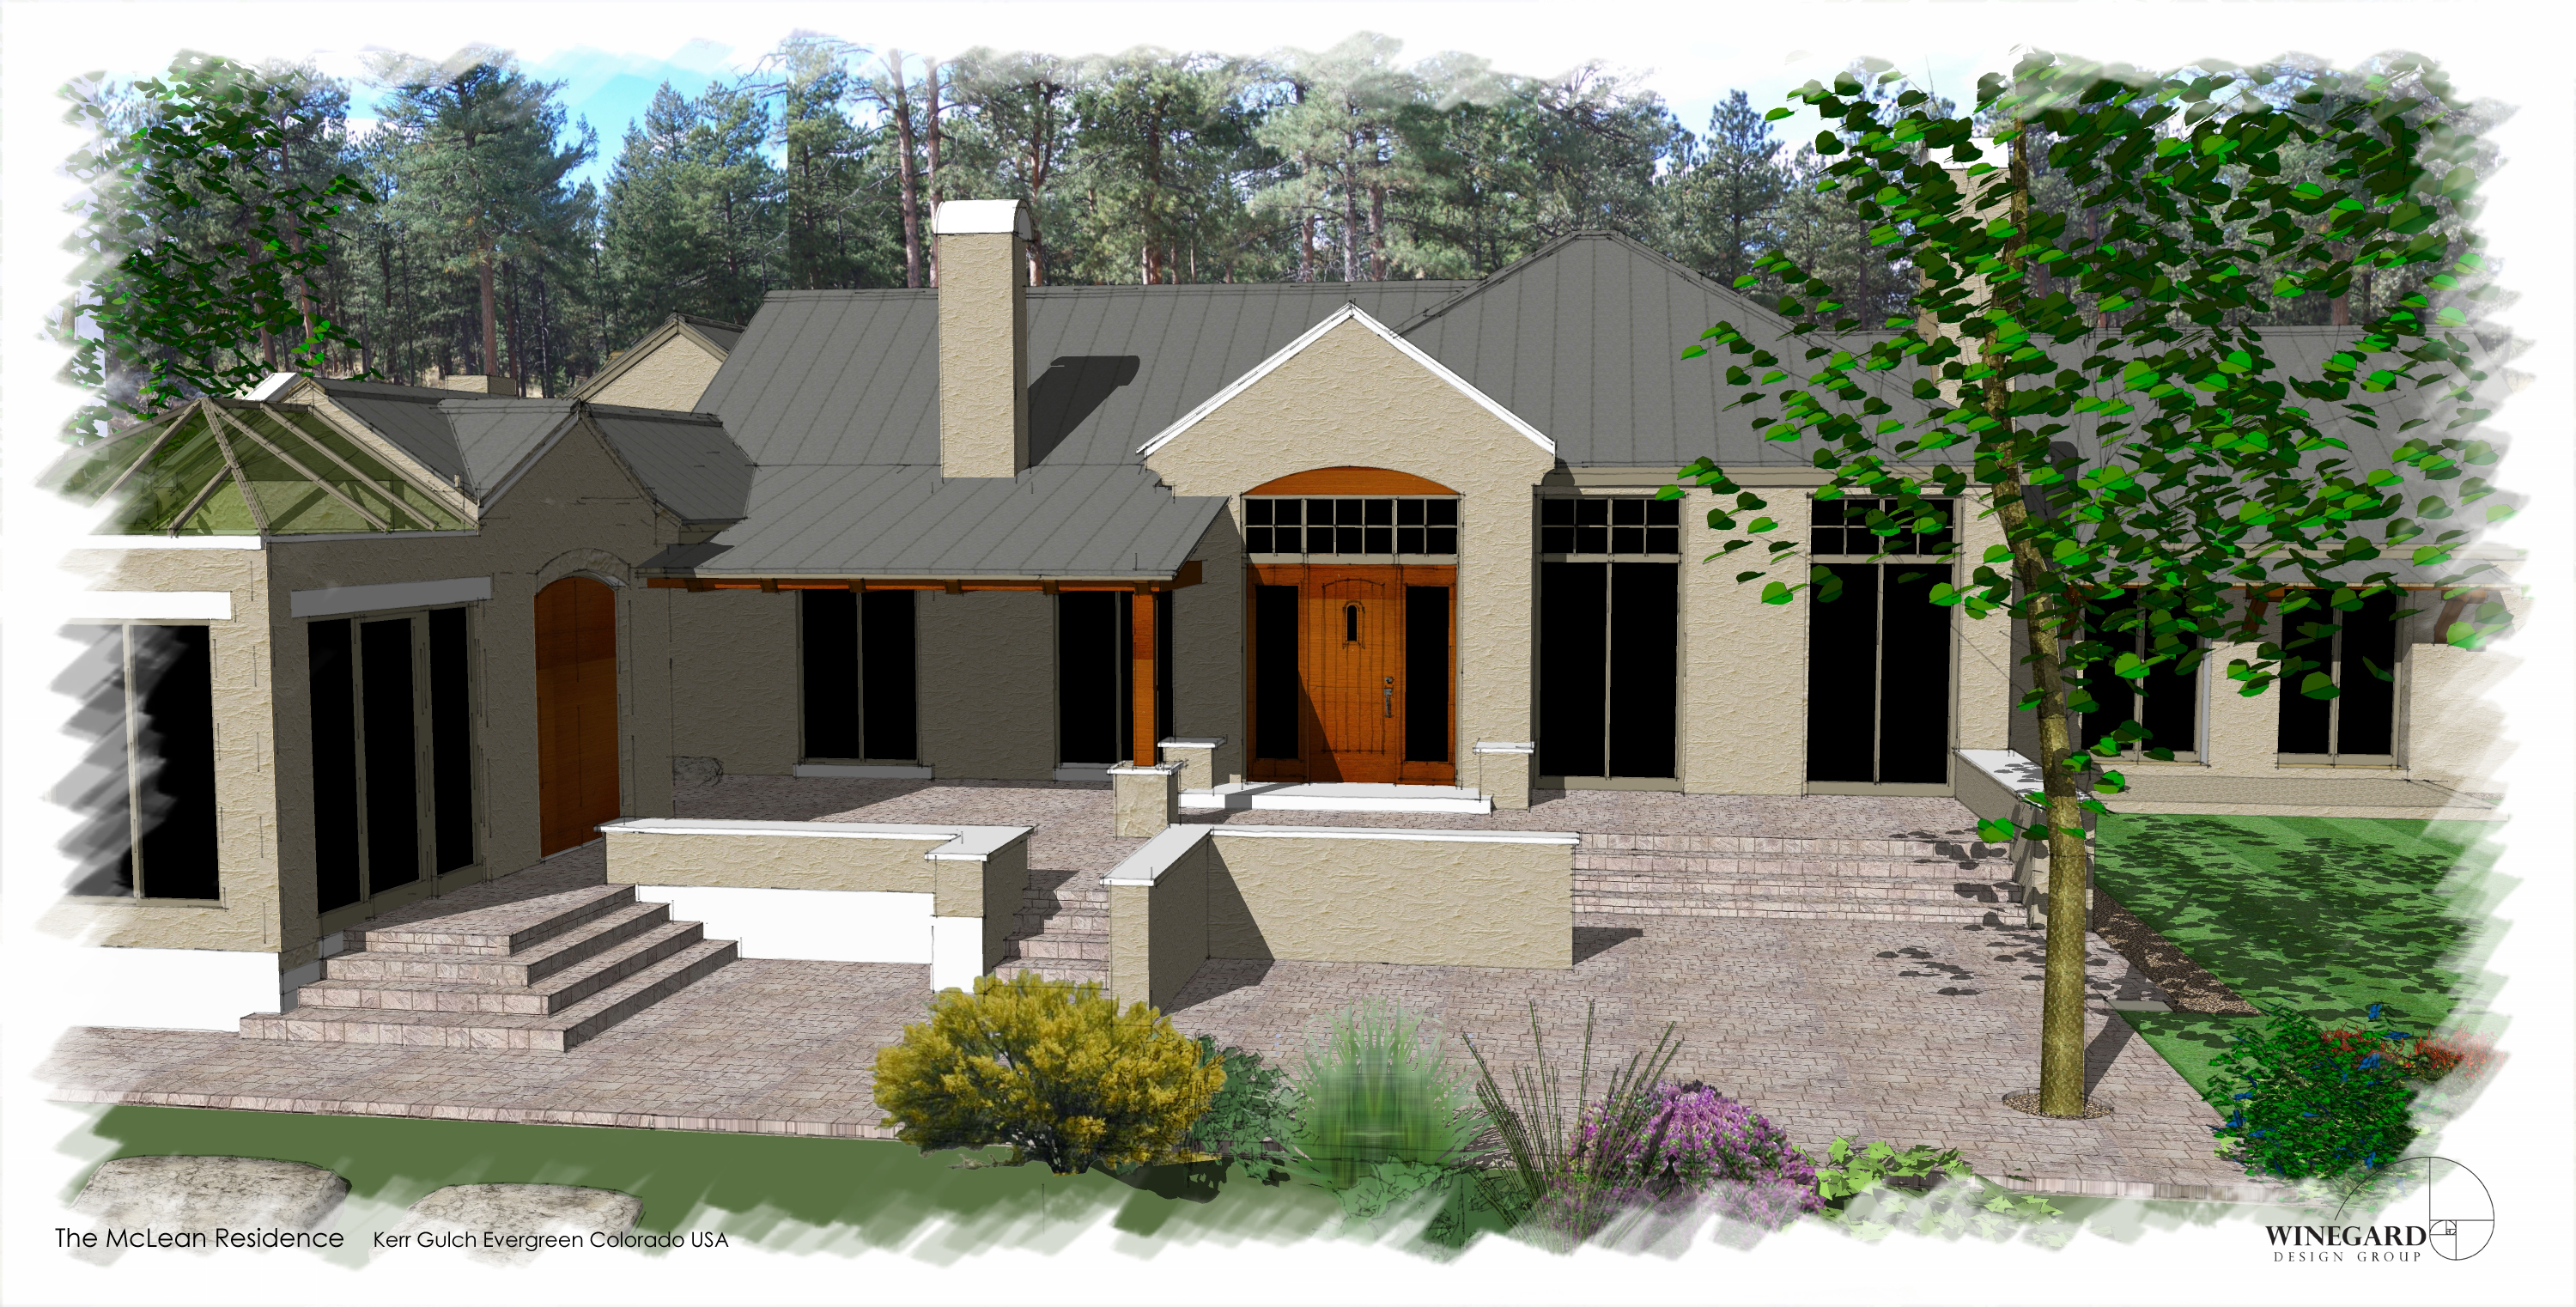 Kerr Gulch Evergreen Ades Design Builders